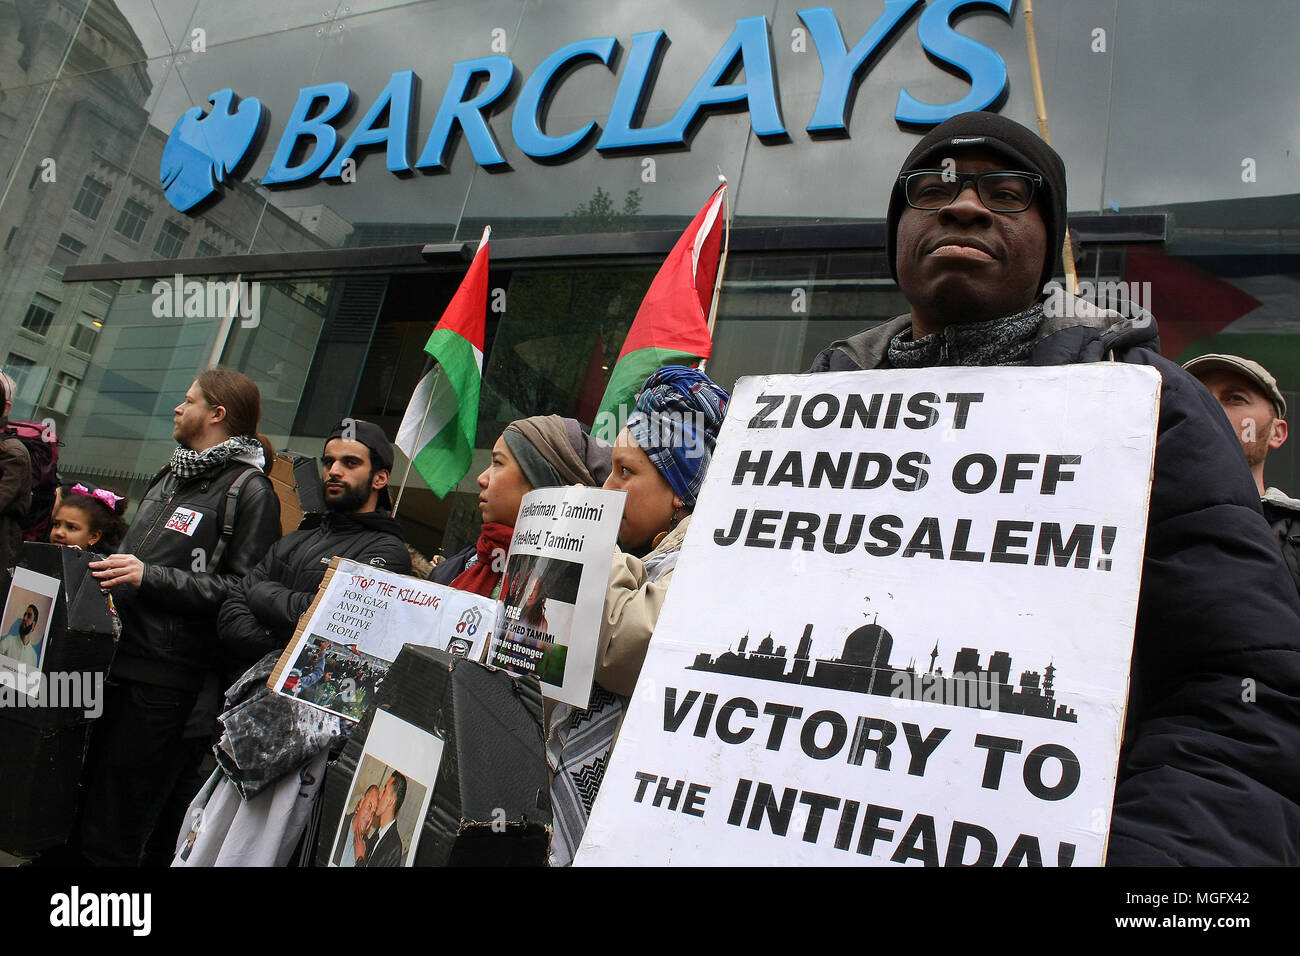 Manchester, UK. 28 April 2018. Palestine Solidarity demonstrators picket Barclays Bank in the city of Manchester. The demonstrators were protesting for the rights of the people of Gaza and against the complicity of British firms and Banking Institutions who contribute either materially or financially to Israel and its arms trade. Credit: SOPA Images Limited/Alamy Live News - Stock Image